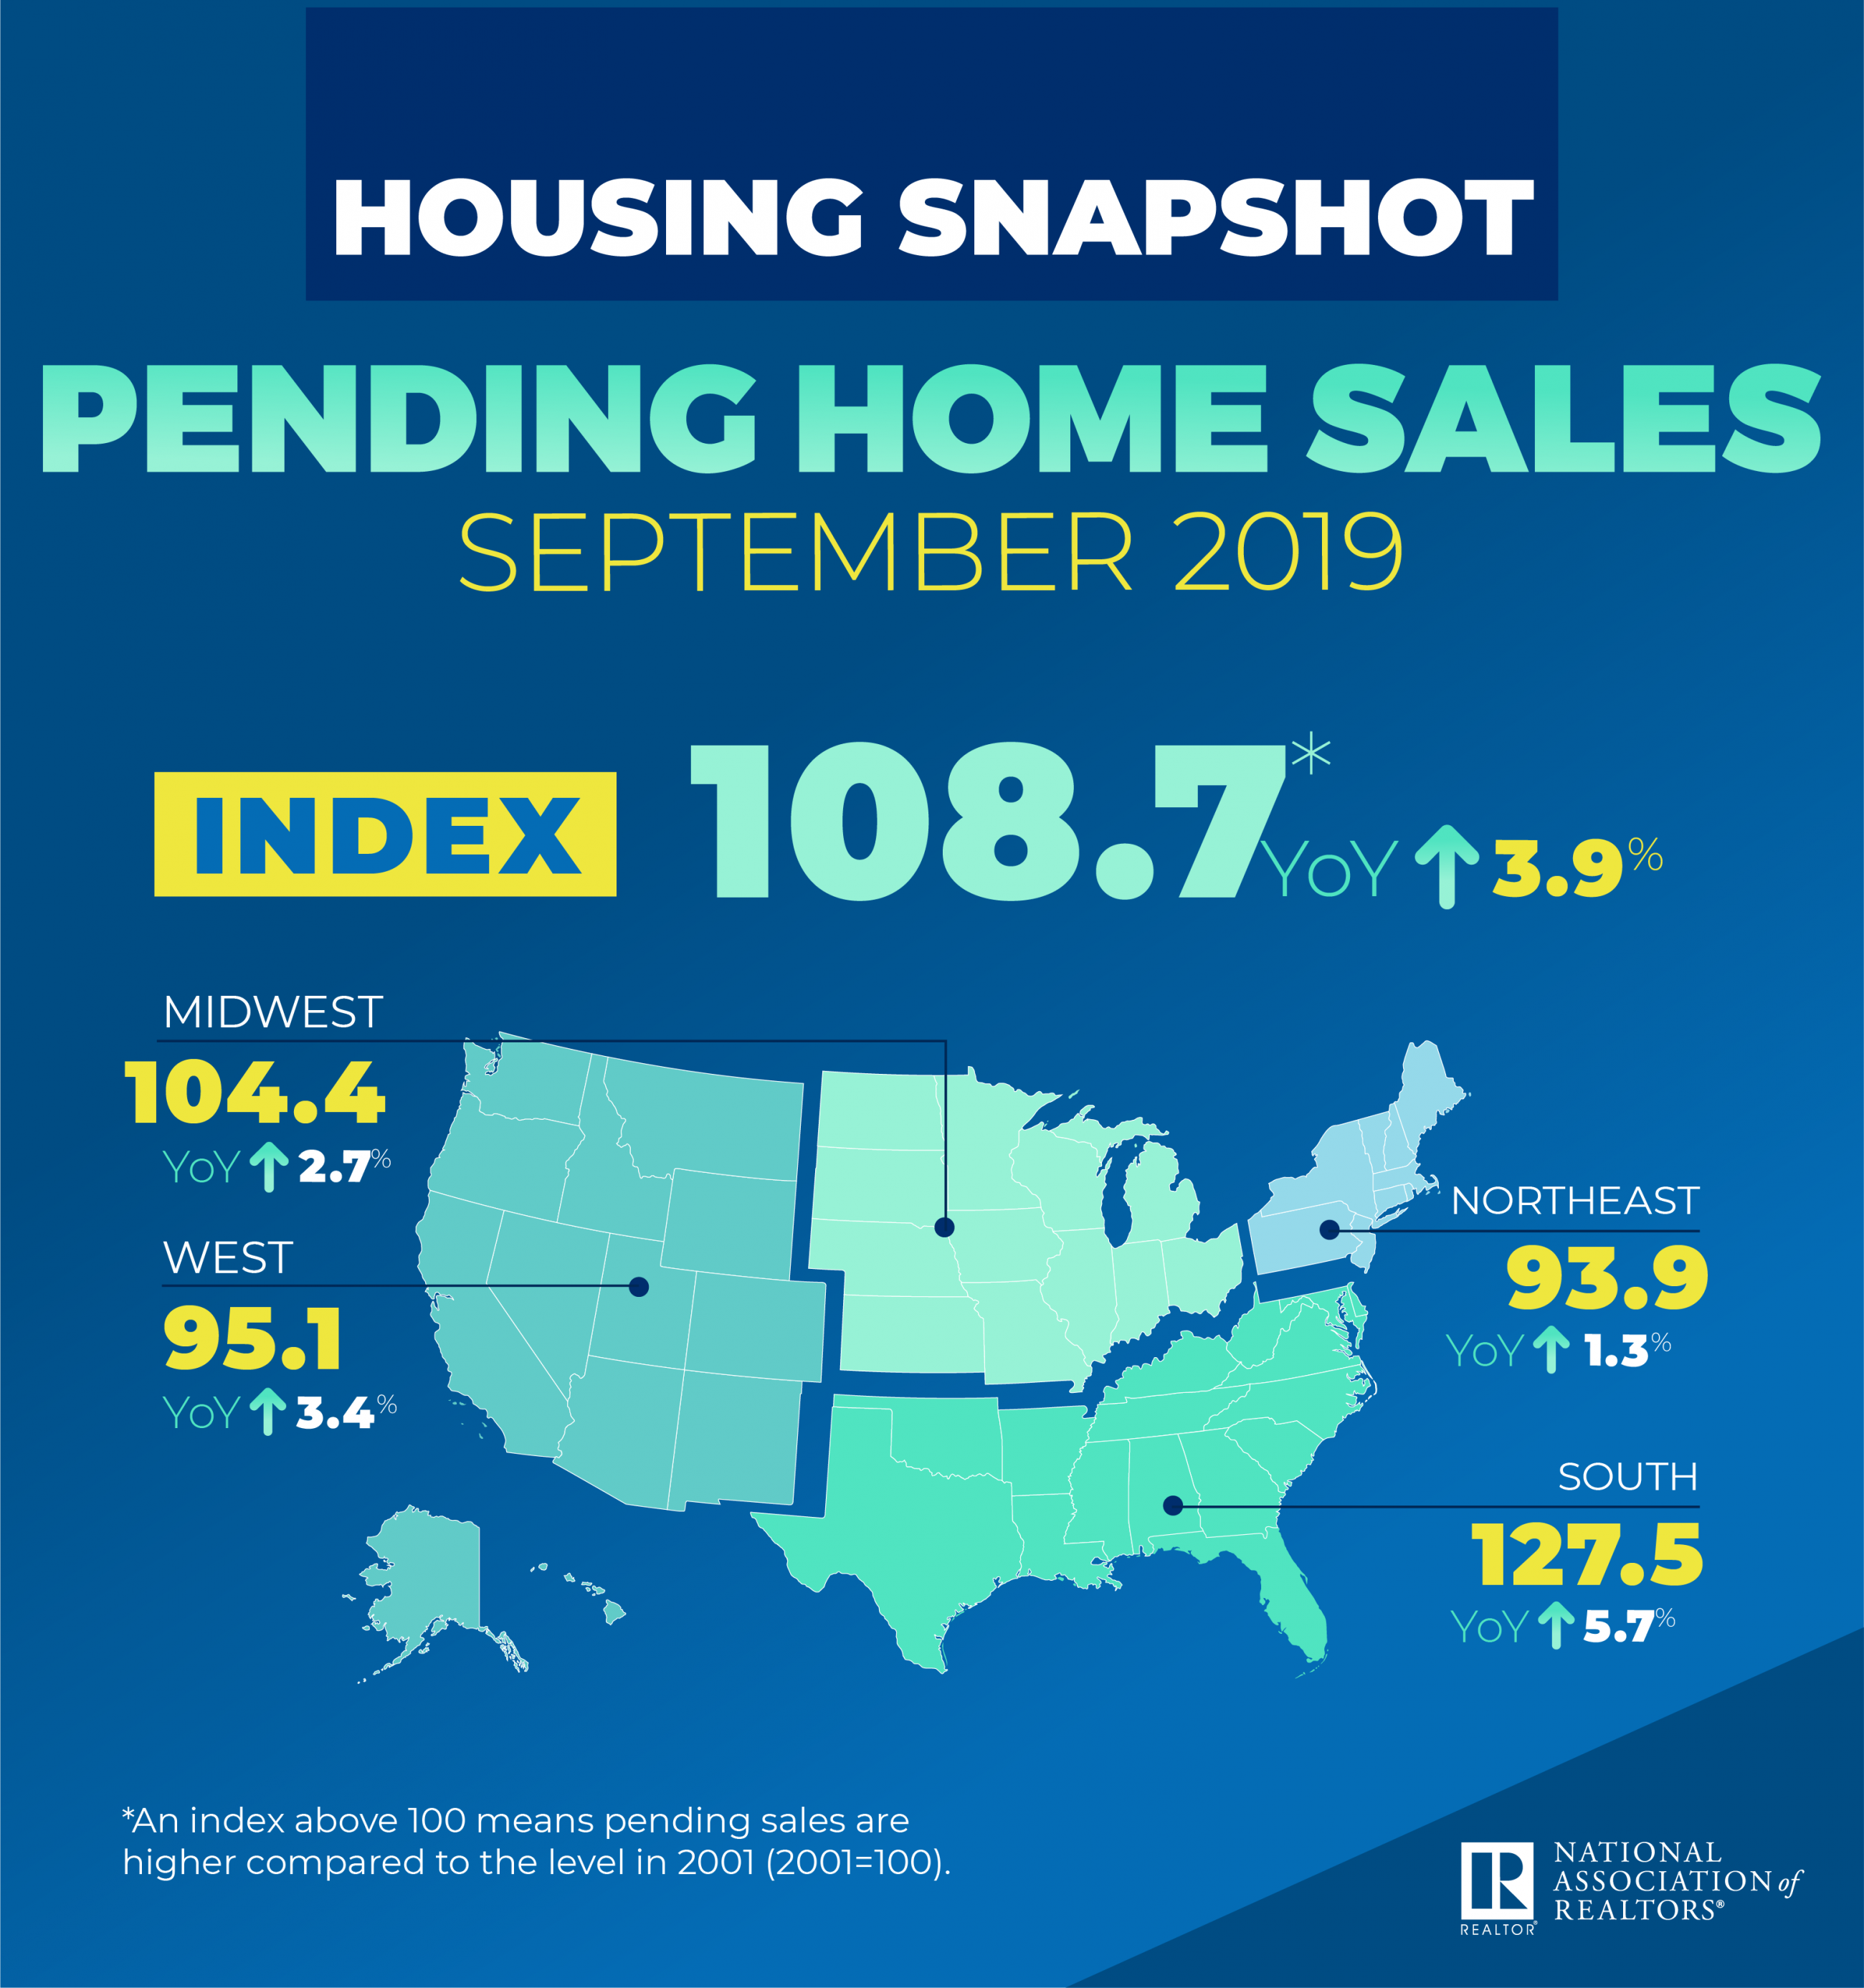 September 2019 Pending home sales. Visit source link at the end of this article for more information.